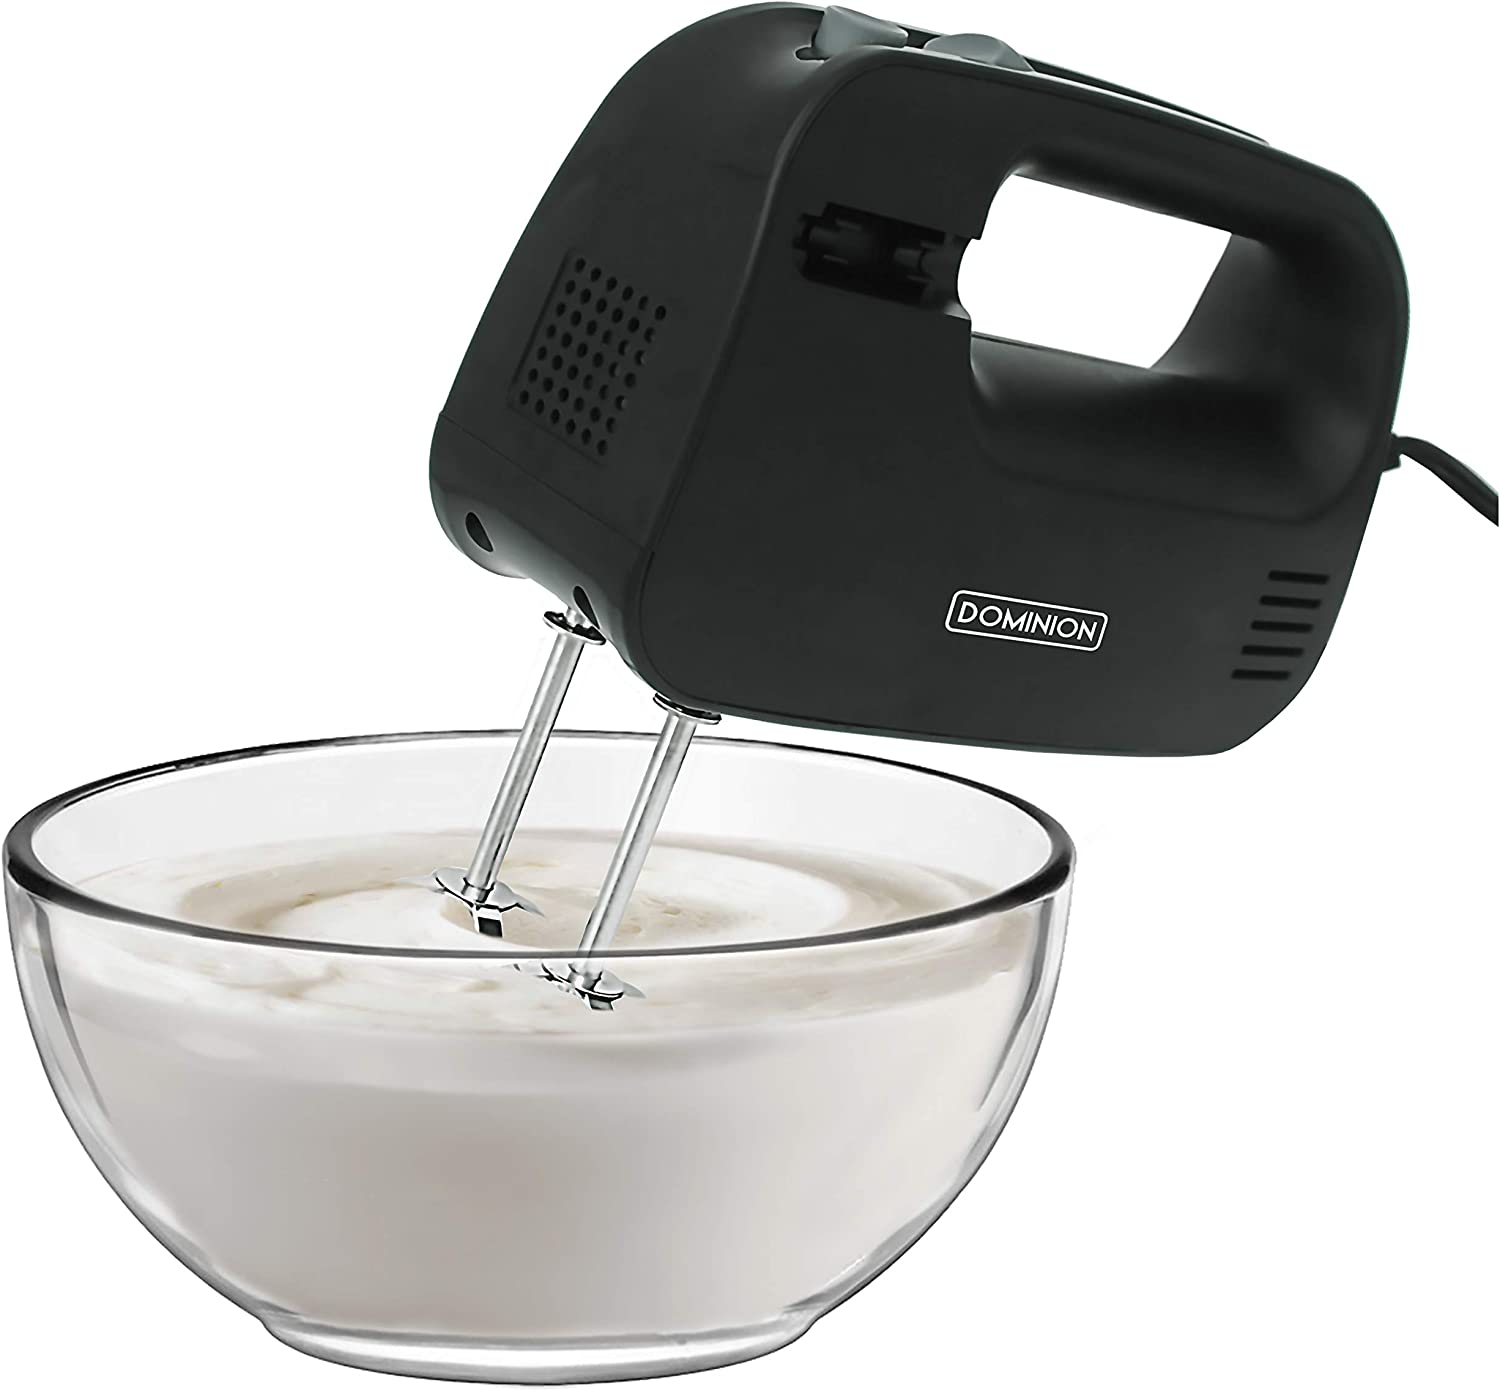 Dominion Electric Hand Mixer, 3 Mixing Speeds, Clever Built In Beater Storage, 2 Stainless Steel Chrome Beaters, Ideal for Whipping & Mixing Cookies